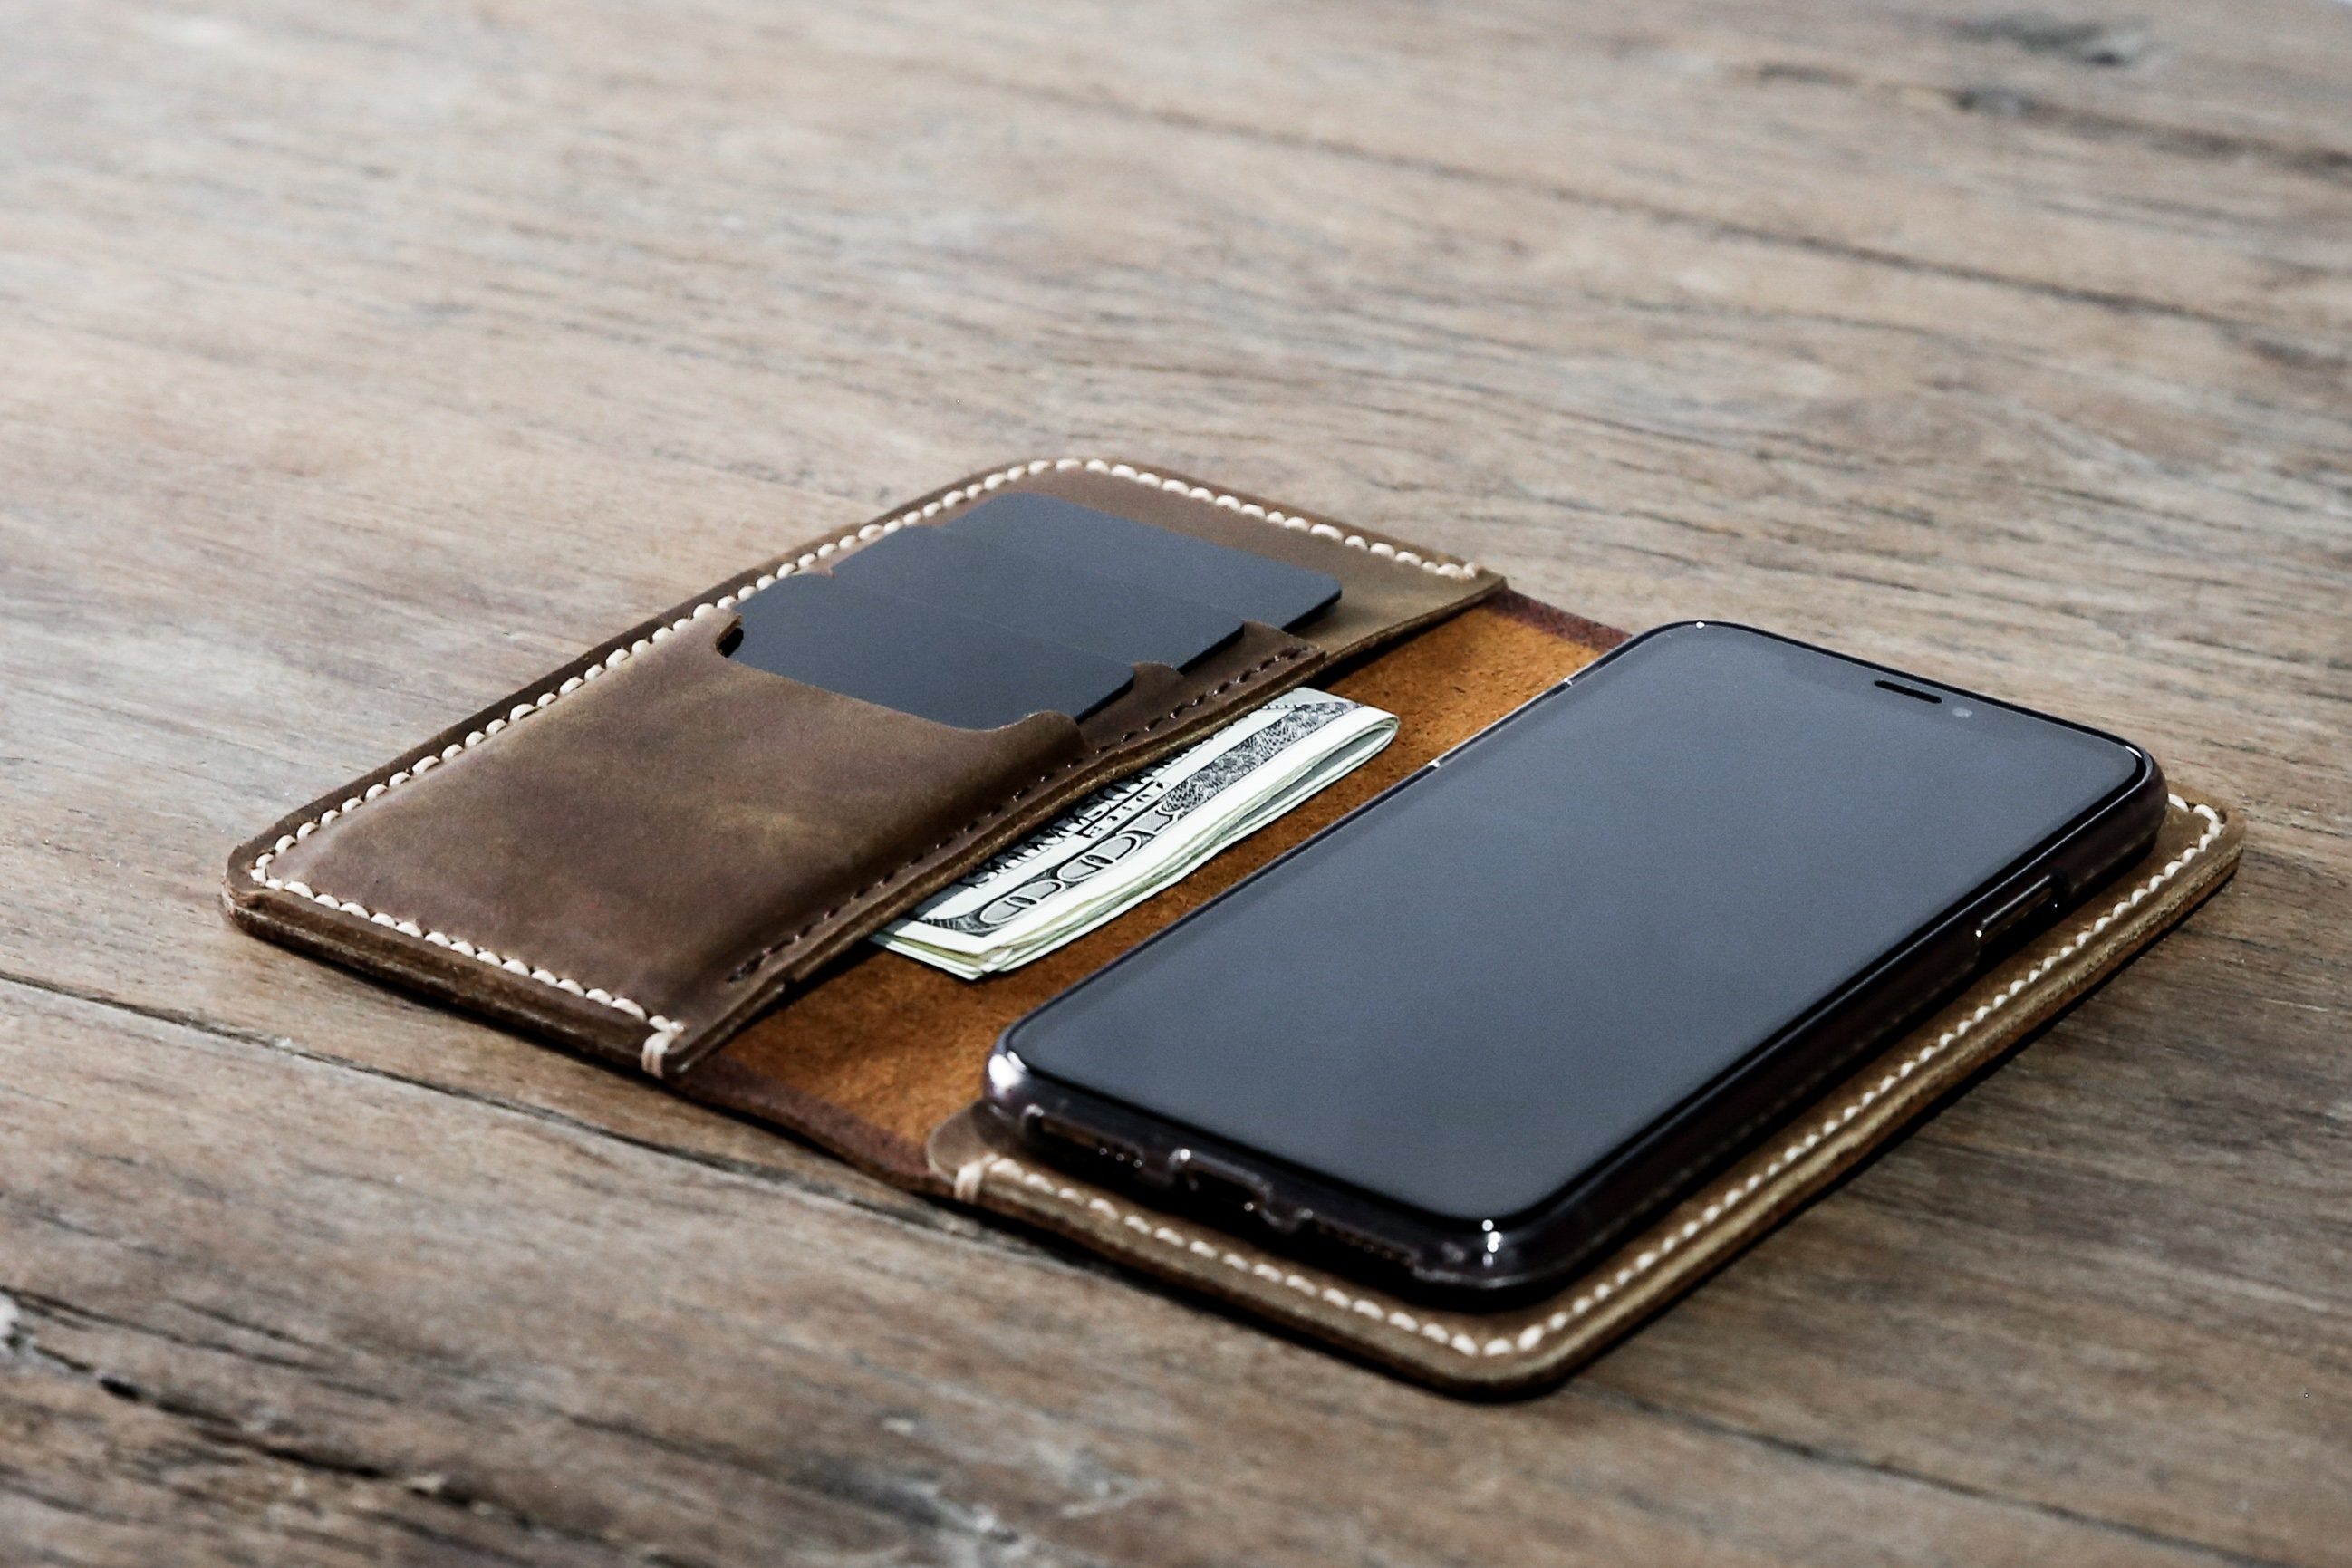 Iphone Xs Max Case Personalized Leather Iphone Xr Wallet Case Iphone Xs Xr Xsmax X 8 8plus 7 7plus 6 6s Iphone Xr Case 055